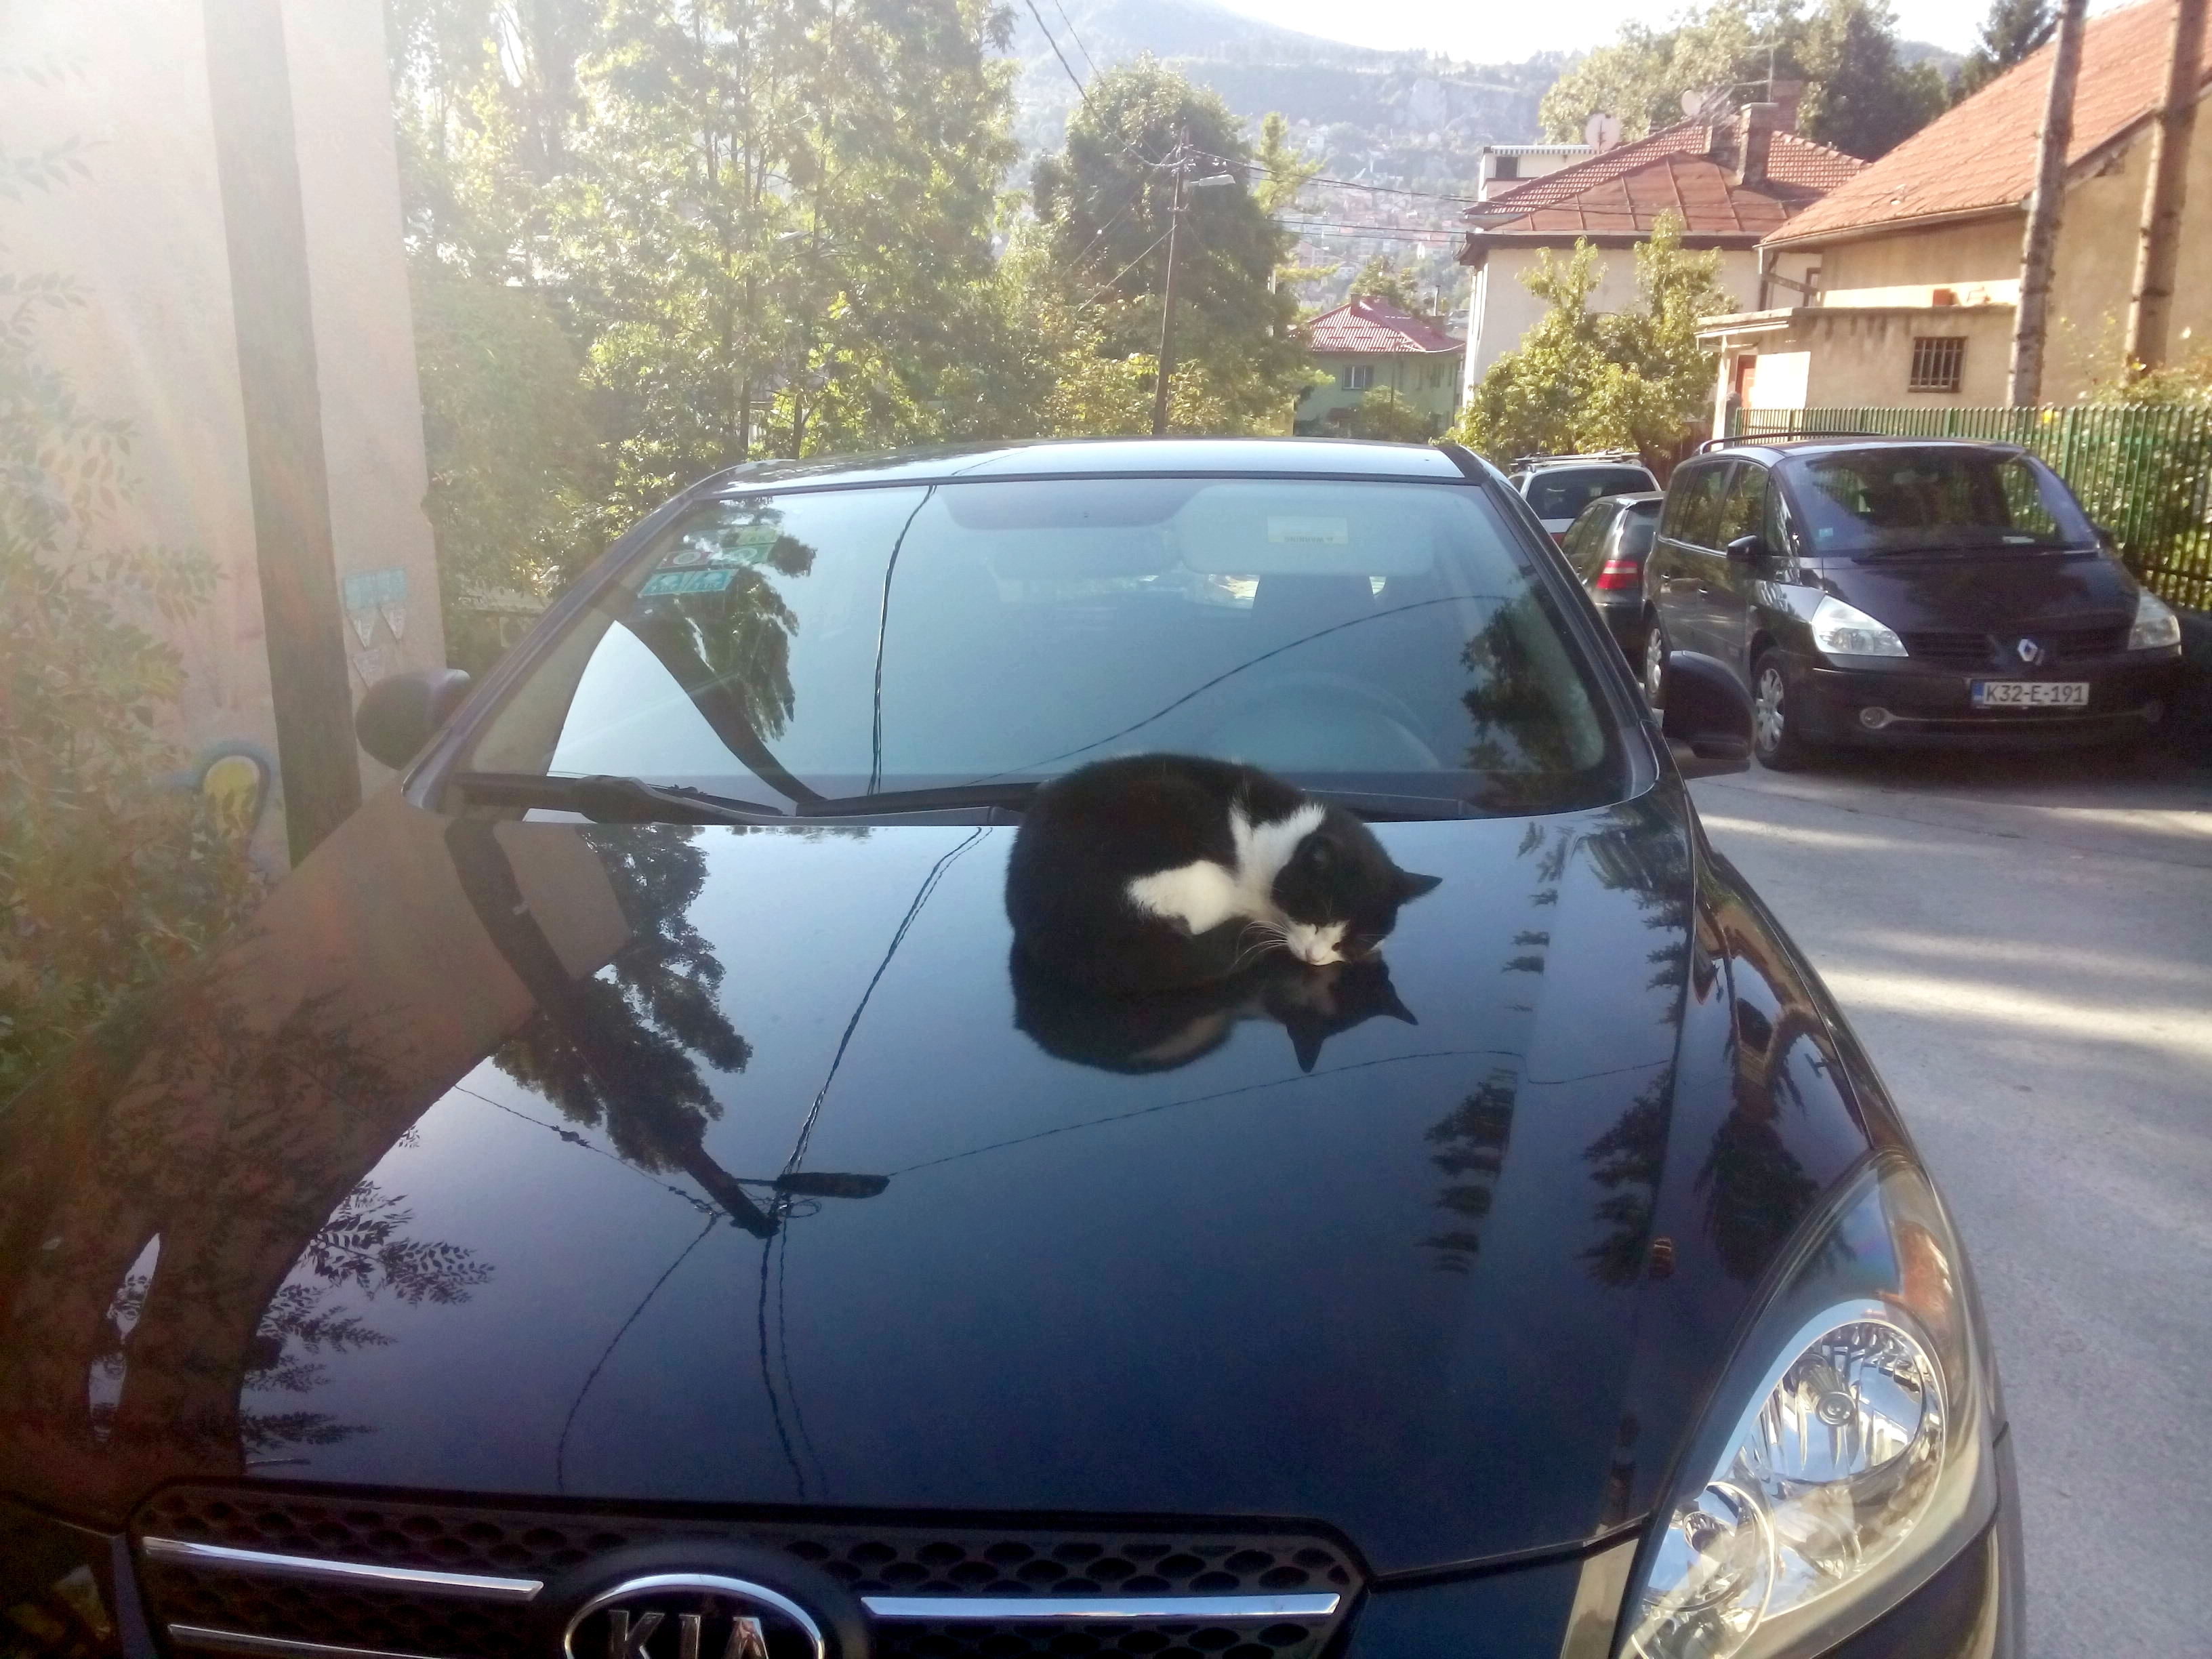 A cat curled up asleep on the bonnet of a black car, in the sun. Hillside in the background